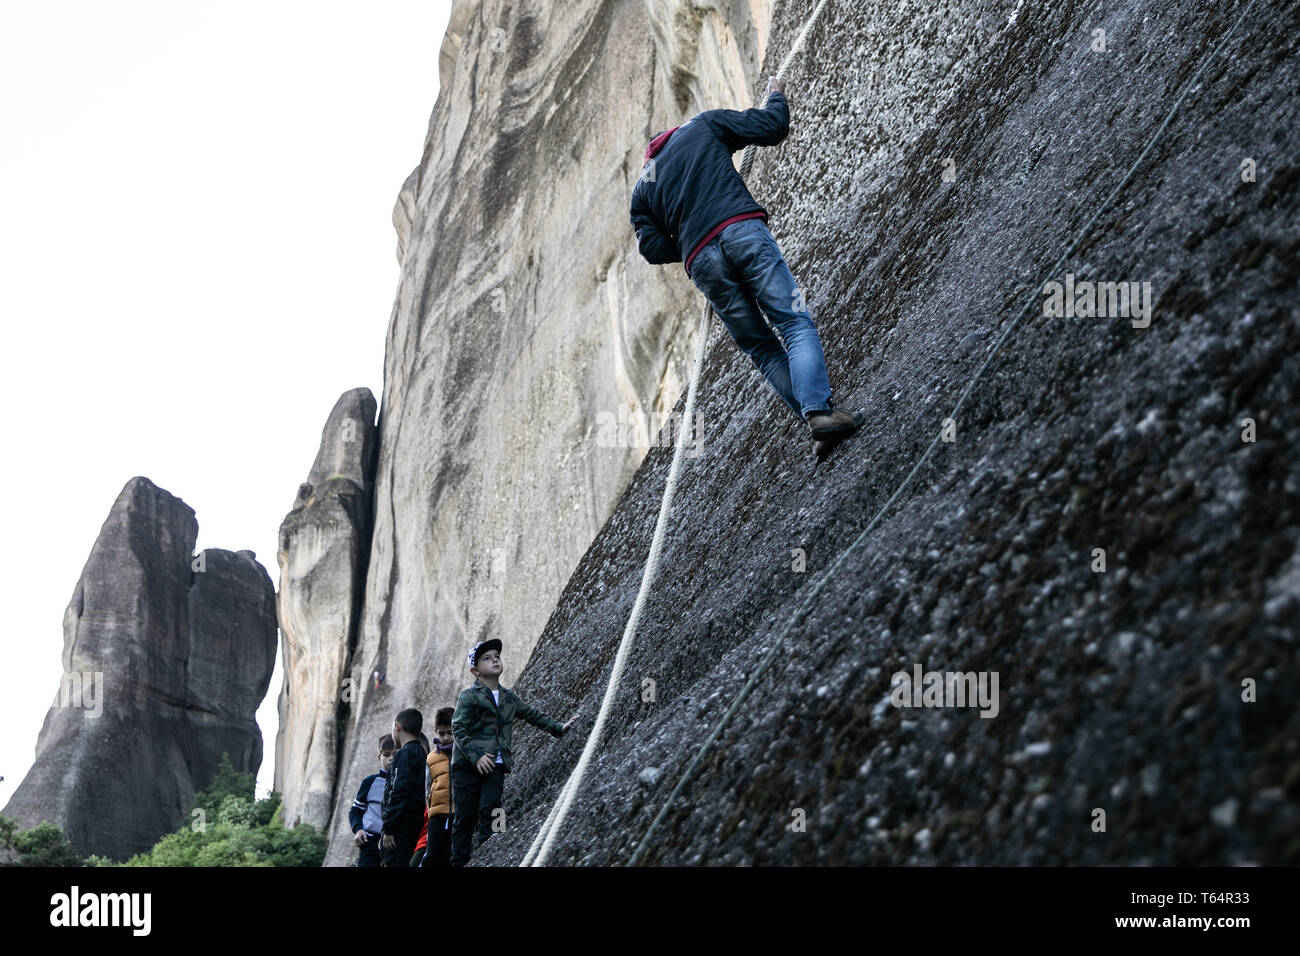 Meteora, Greece. 29th Apr, 2019. A climber climbs up Meteora complex of sandstone cliffs in Kastraki village, central Greece, on April 29, 2019. Following a 300-year traditional custom during the annual celebrations of Saint George's Day, climbers hang colorful scarves near an old ruined monastery built in a cave 40 meters above the village on the sandstone rocks and return with the old ones, which can be given away as a token of good health. Credit: Lefteris Partsalis/Xinhua/Alamy Live News - Stock Image